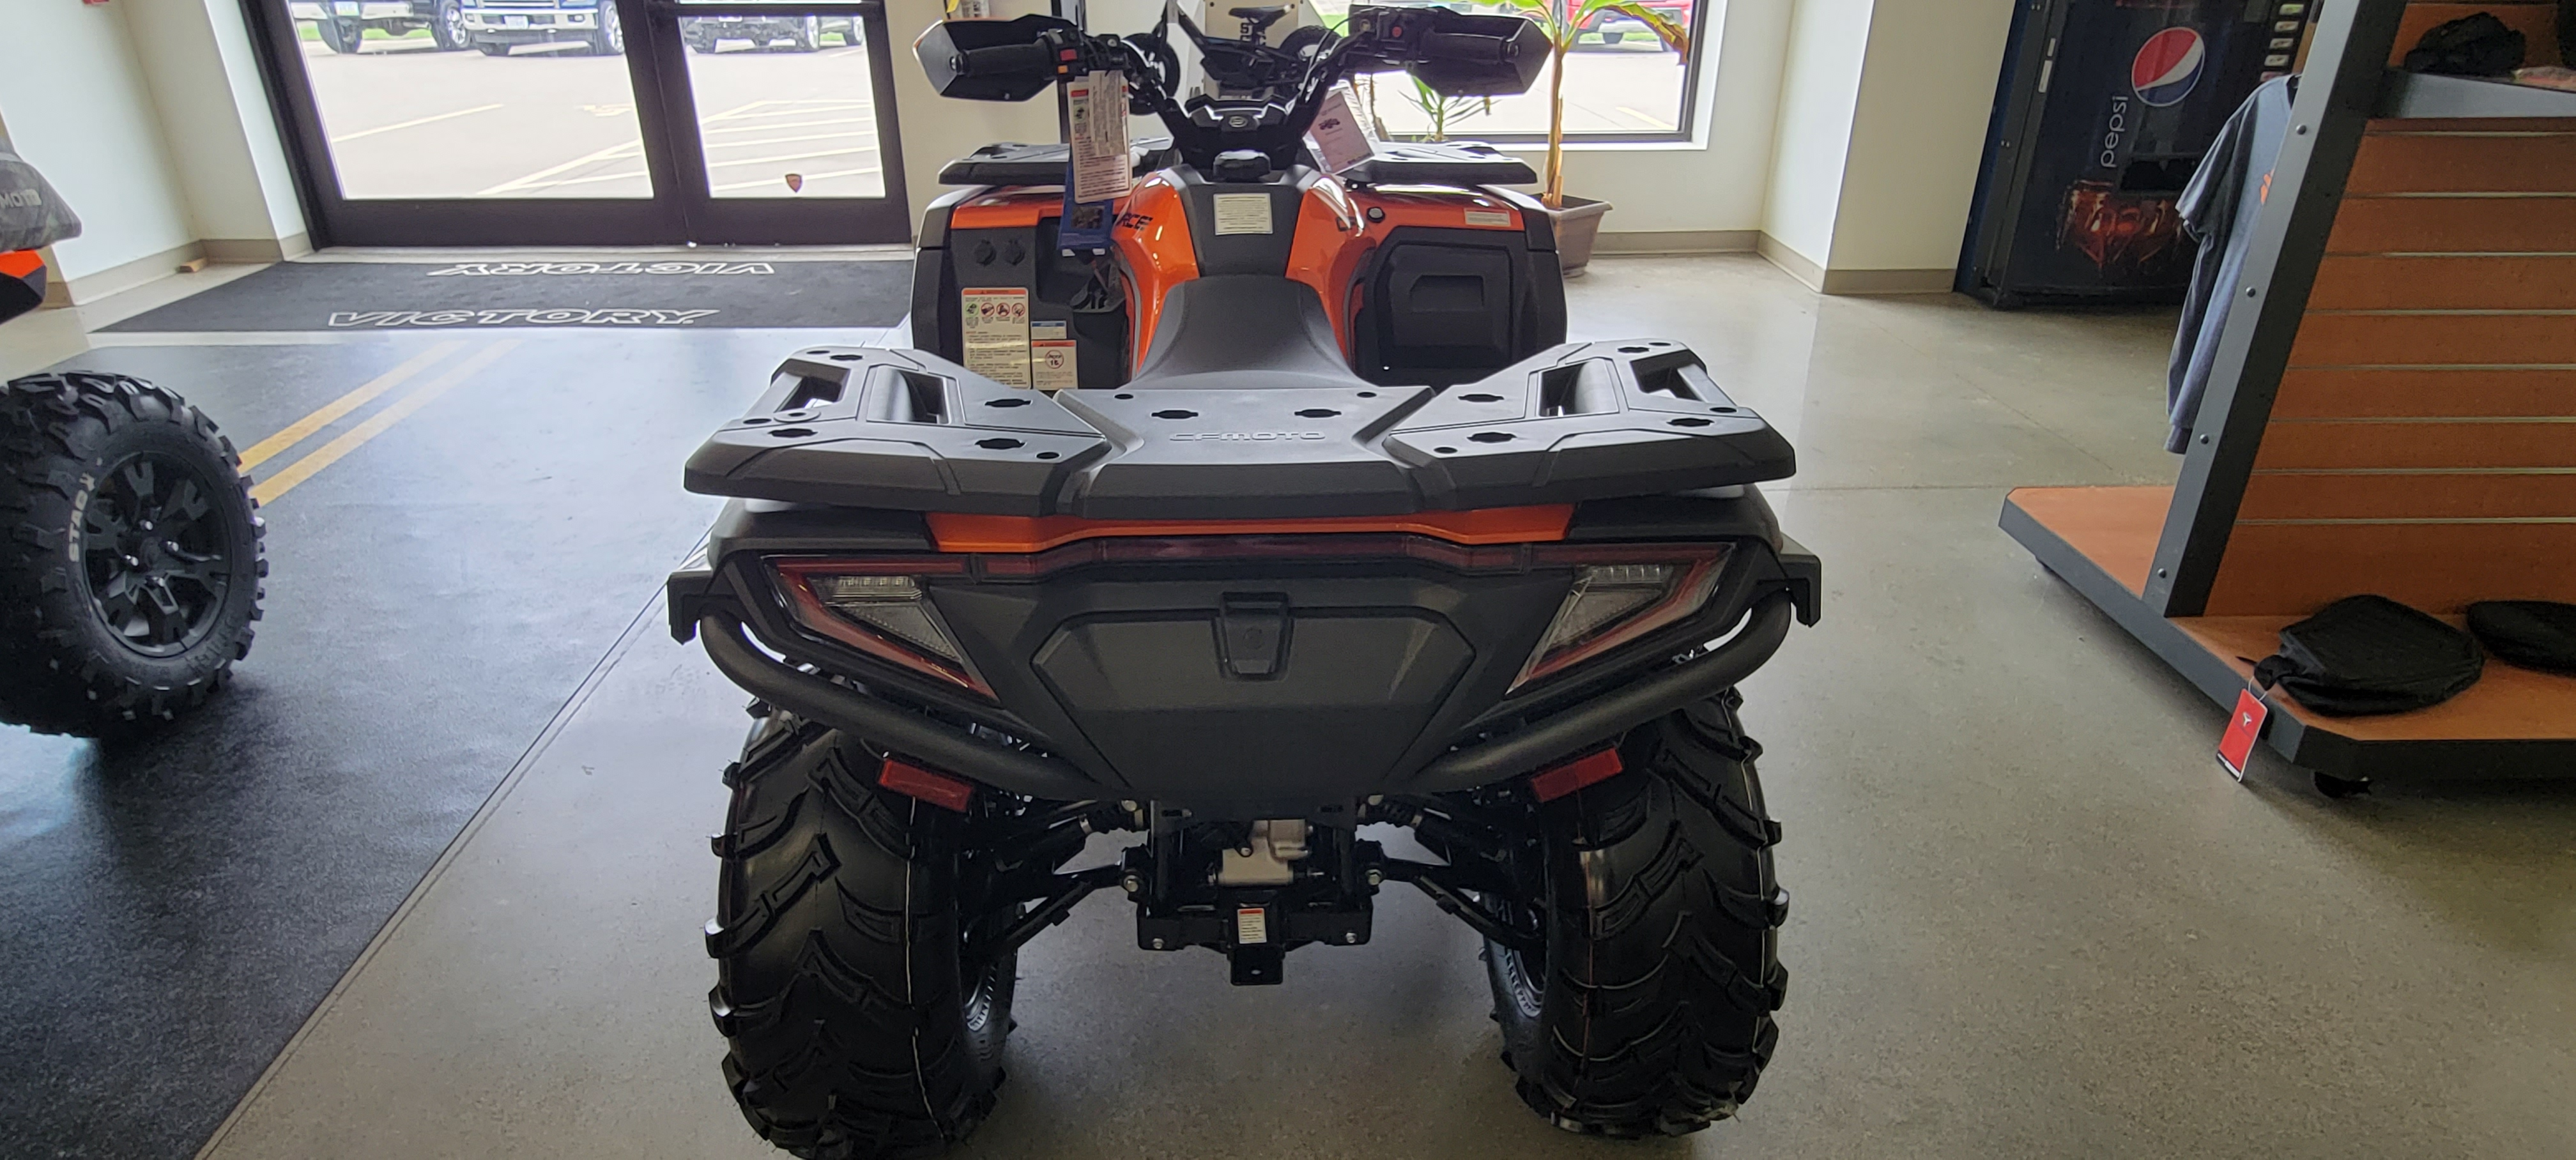 2021 CFMOTO CFORCE 600 at Brenny's Motorcycle Clinic, Bettendorf, IA 52722